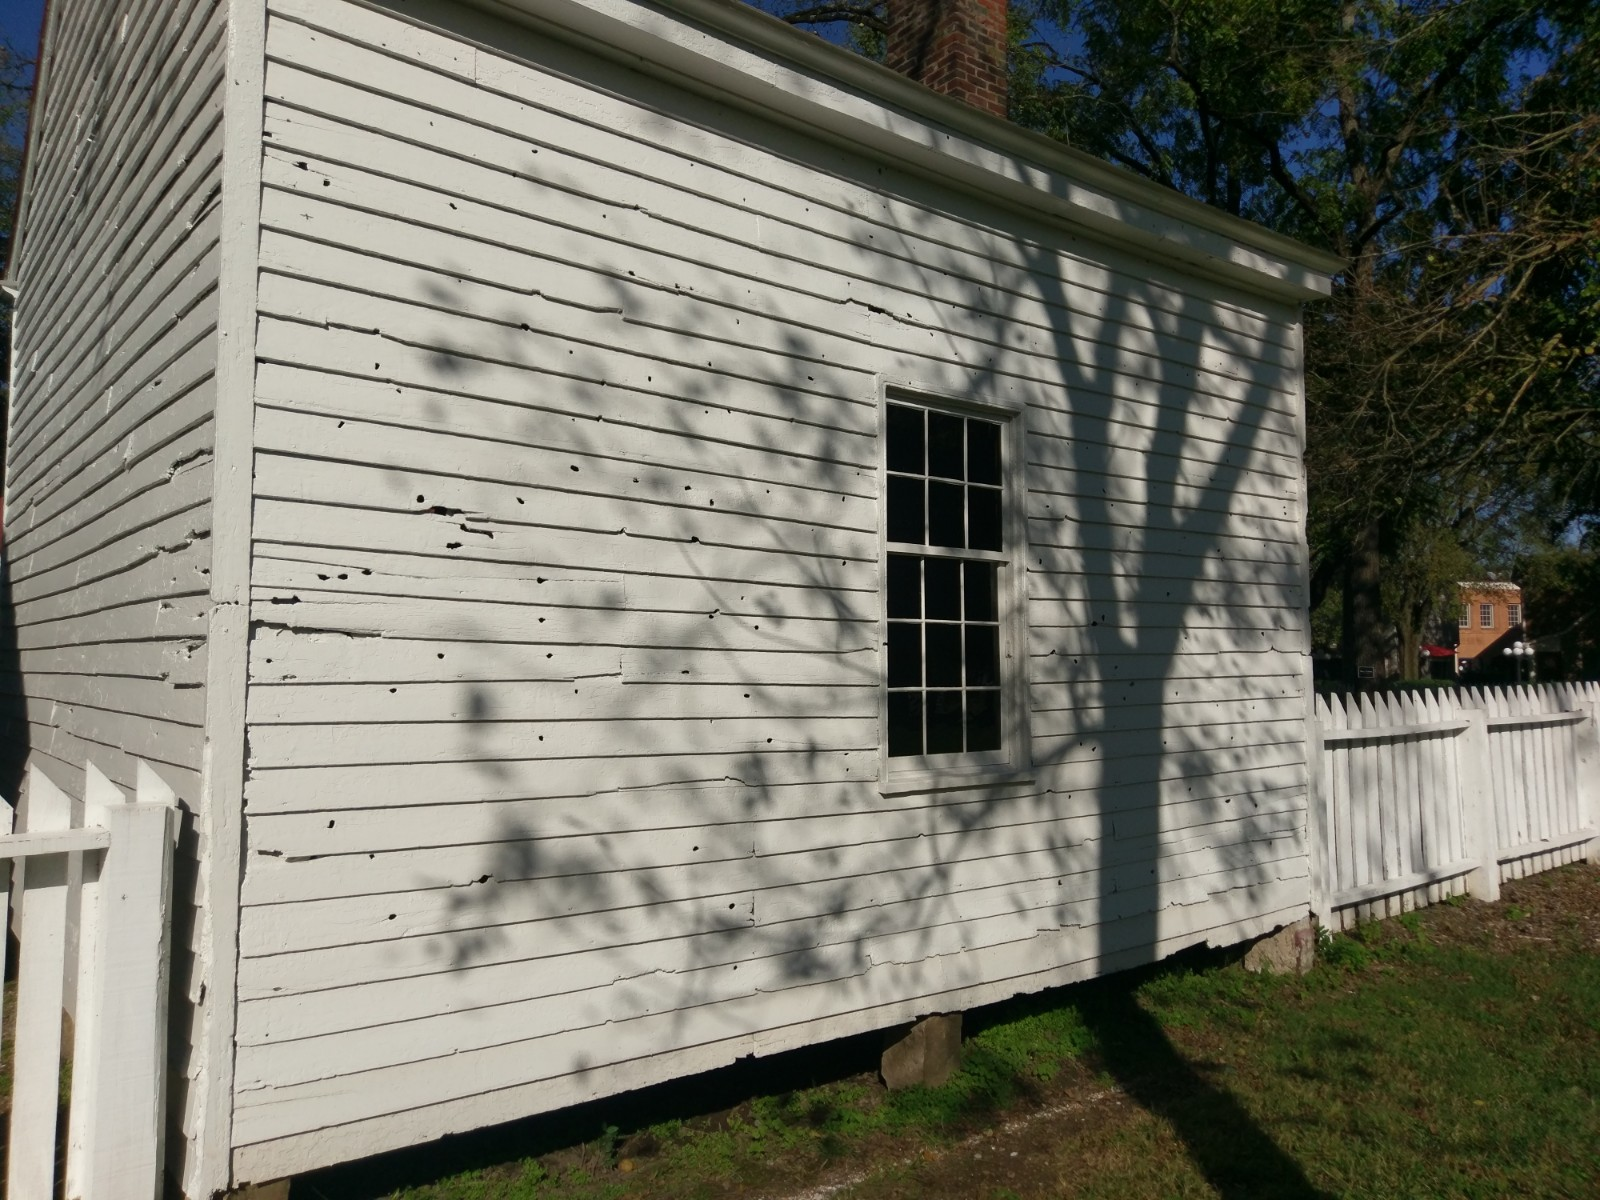 The Carter family office building- this structure is the most telling of all the buildings in the property- several bullets clearly penetrated completely through one side and out the other- the inside of the building shines with numerous rays from the hundreds of holes in the walls. Photo: Author.